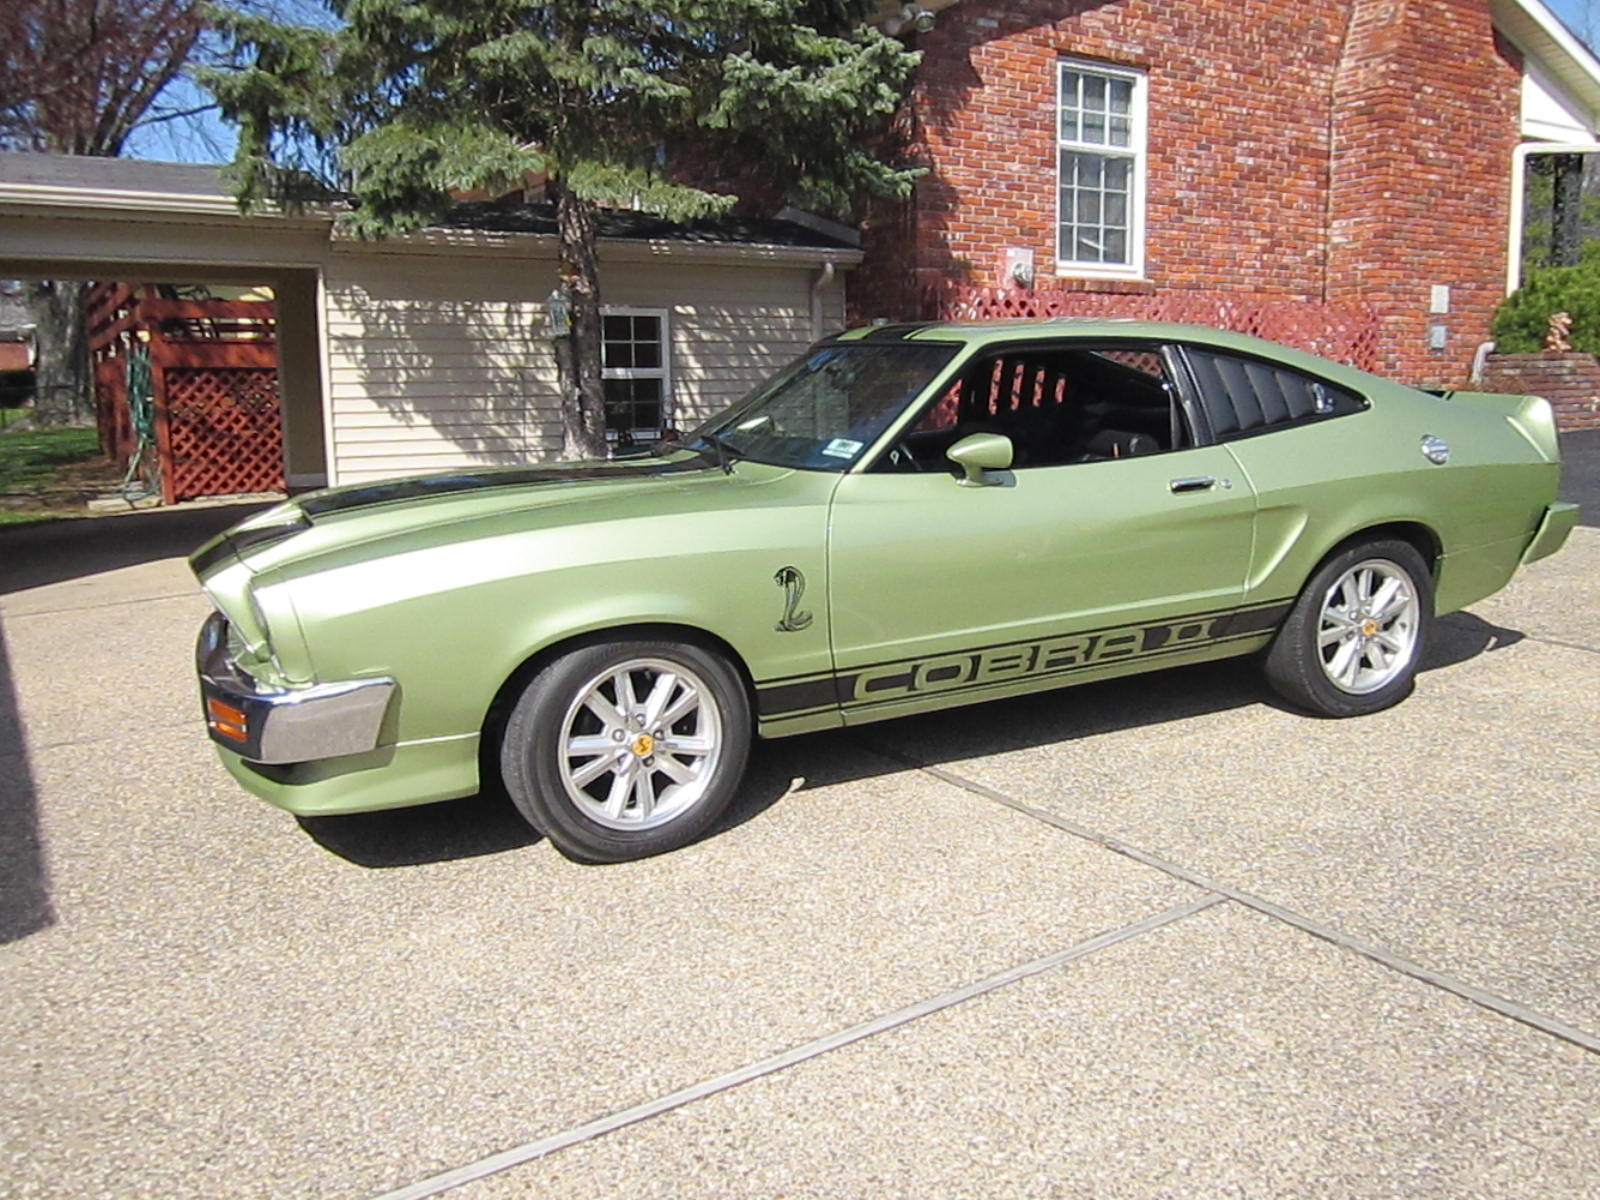 Ford Mustang Questions Im 19 Years Old And I Just Bought A 1977